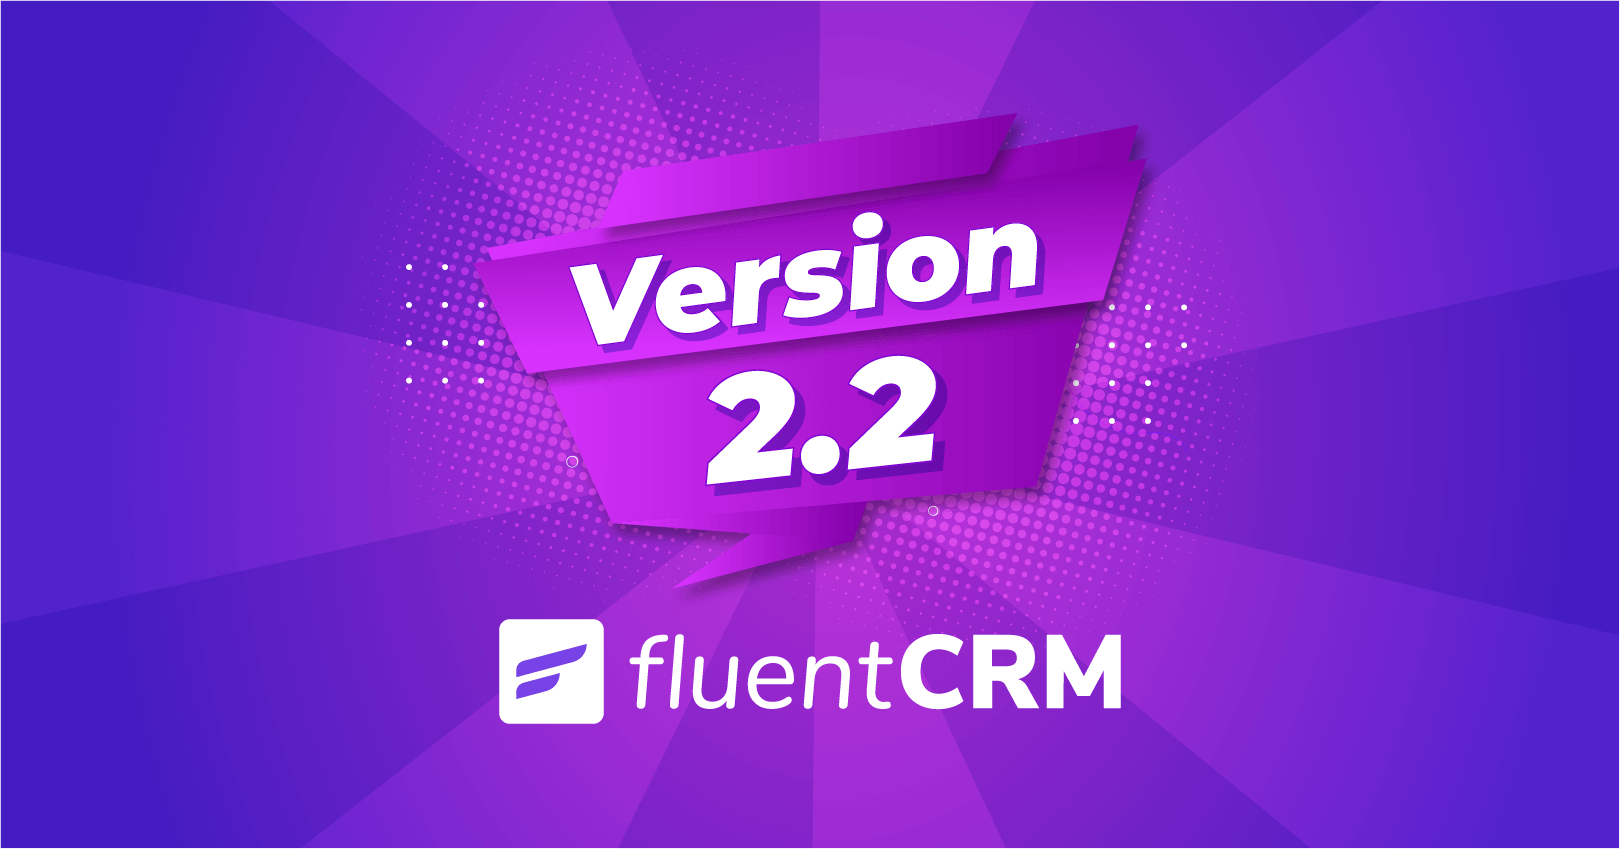 FluentCRM 2.2: Introducing Flexible Tagging & Loads of New Features!